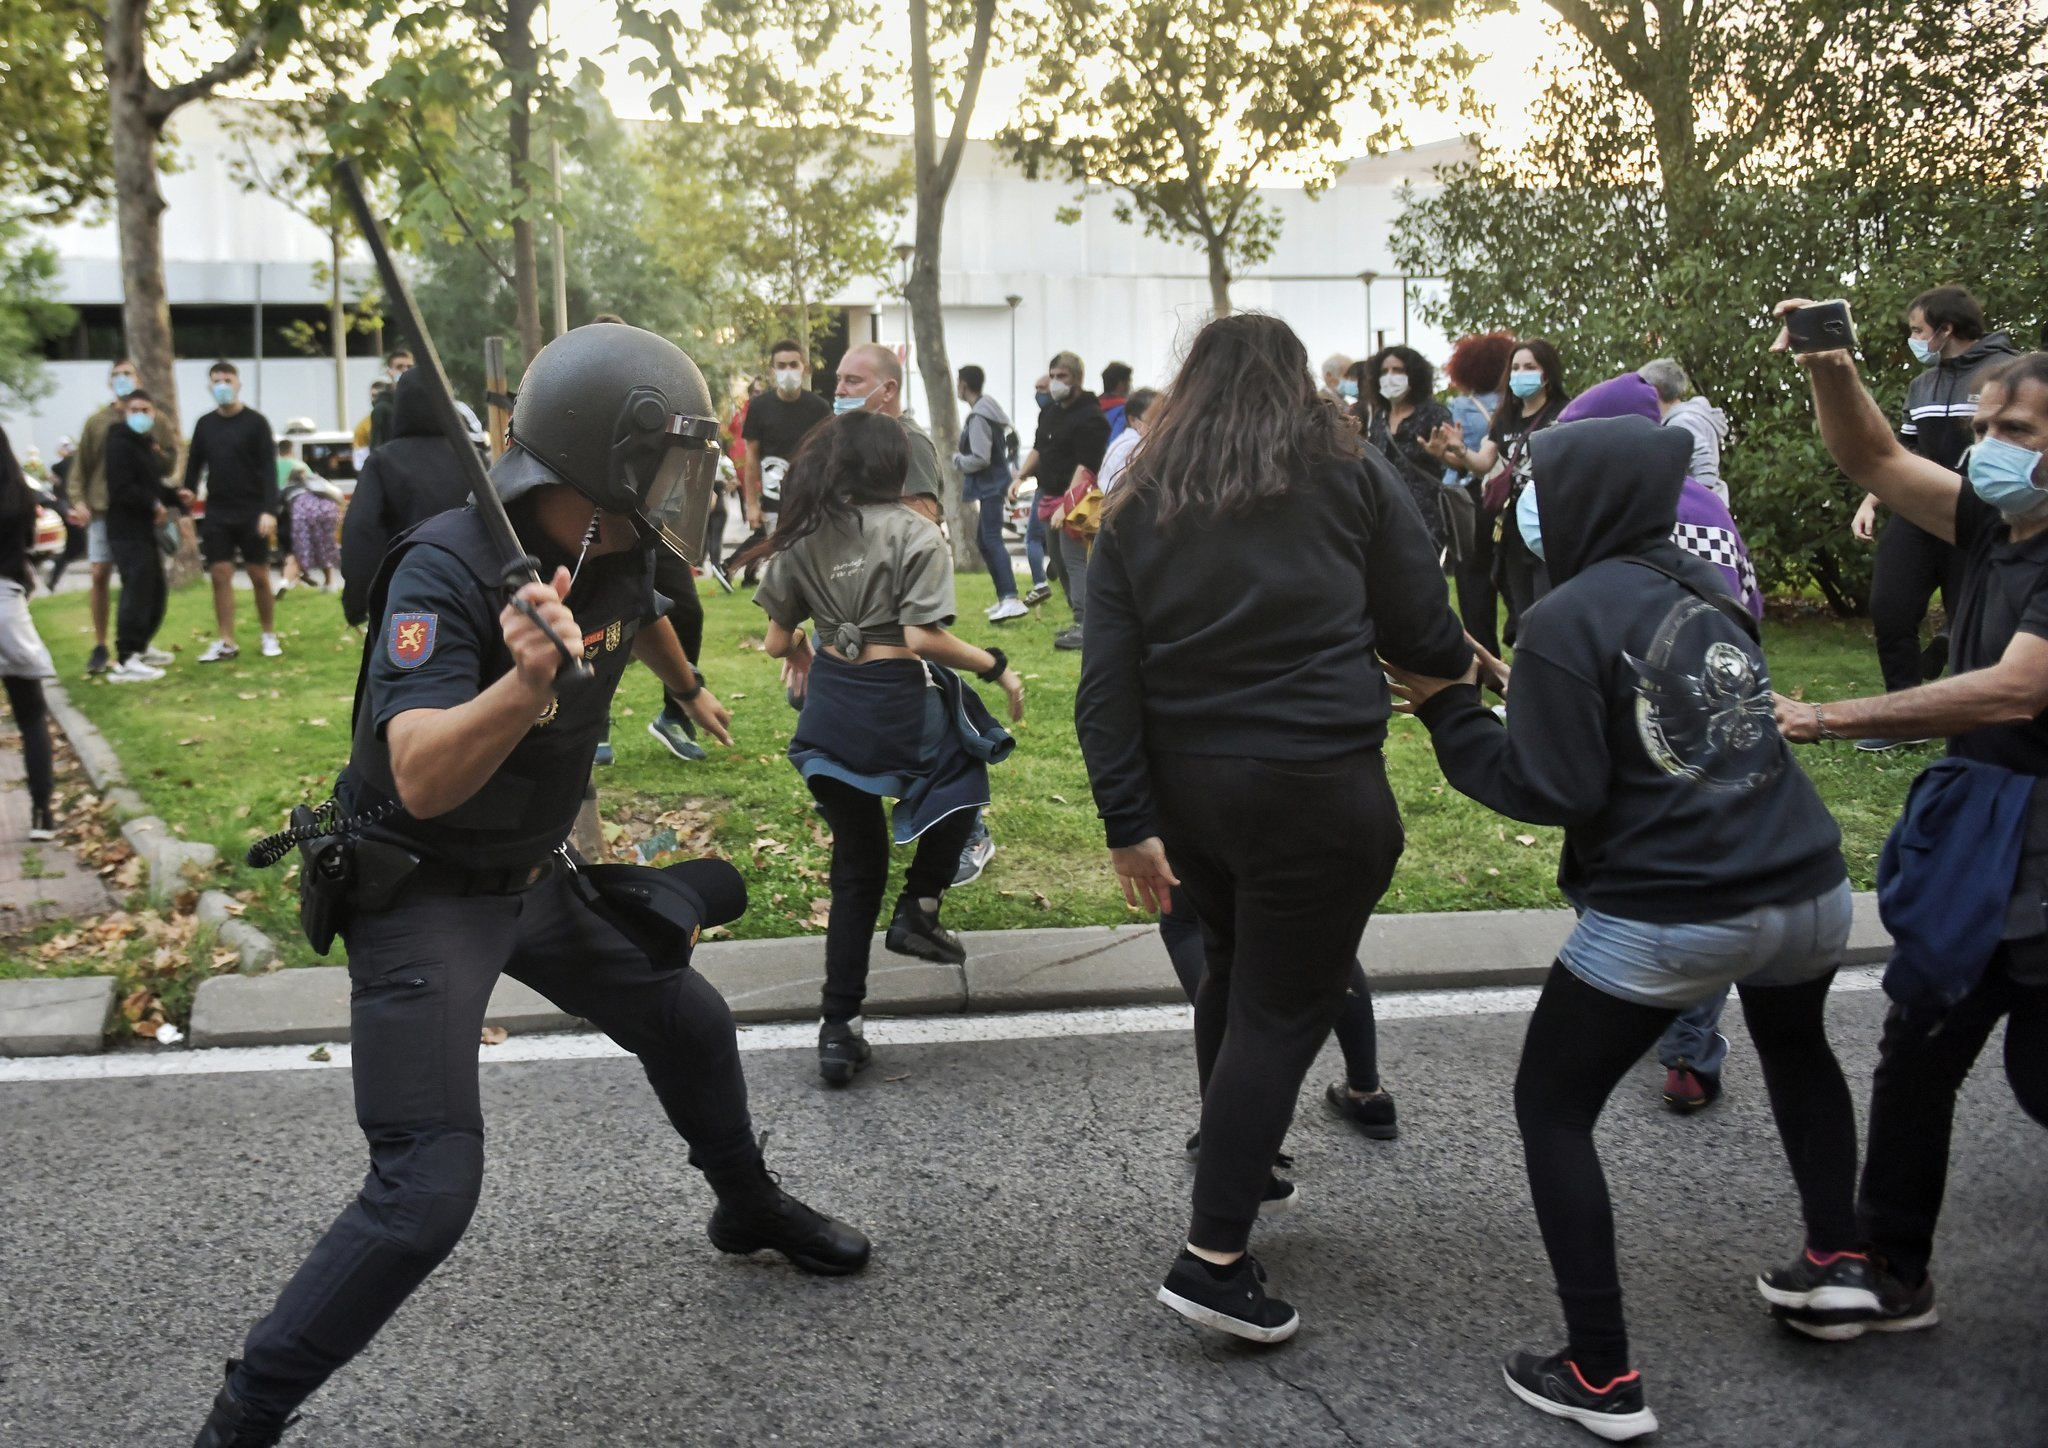 SPAIN – Heavy police charges and three detainees in the protest in Madrid against selective confinements